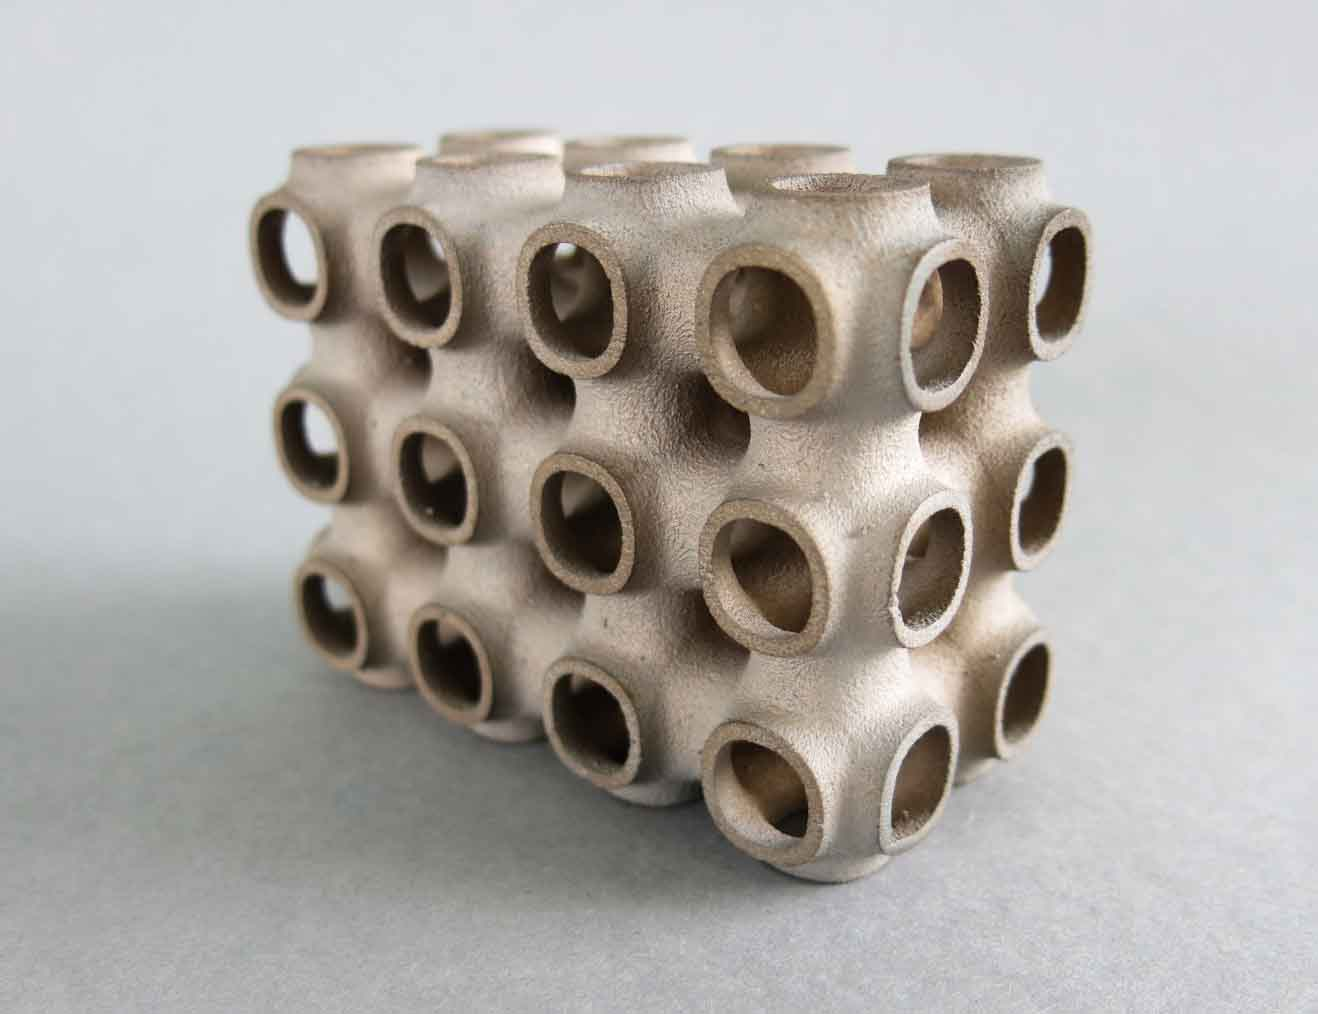 binder jetting metal technology for 3d printing